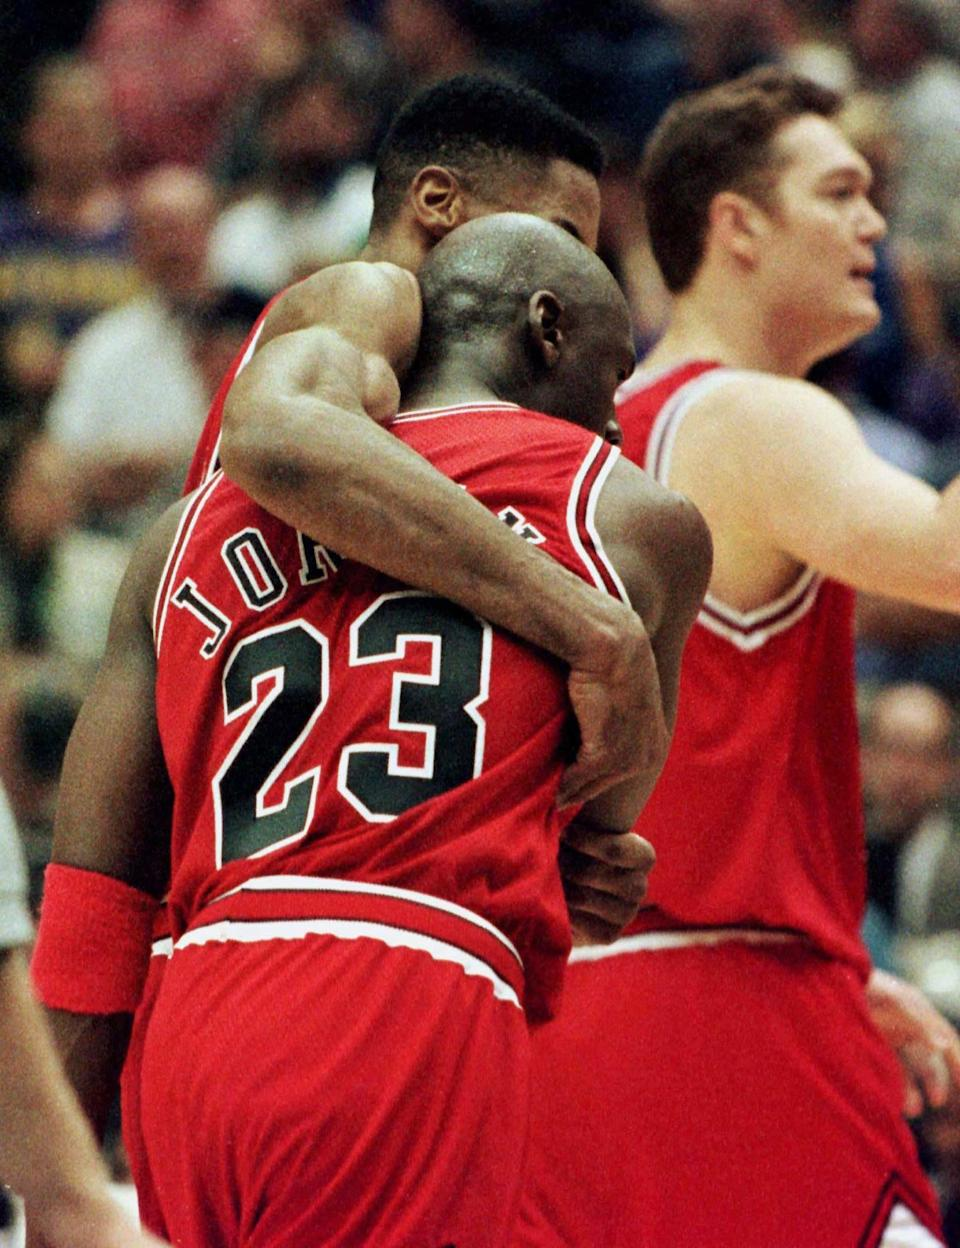 Chicago Bulls guard Michael Jordan is helped off the court by team mate Scottie Pippen after the Chicago Bulls defeated the Utah Jazz 90-88 in game 5 of the NBA finals in Salt Lake City, June 11. Jordan suffered from flu-like symptoms during the game. In background is Luc Longley.  SPORT NBA